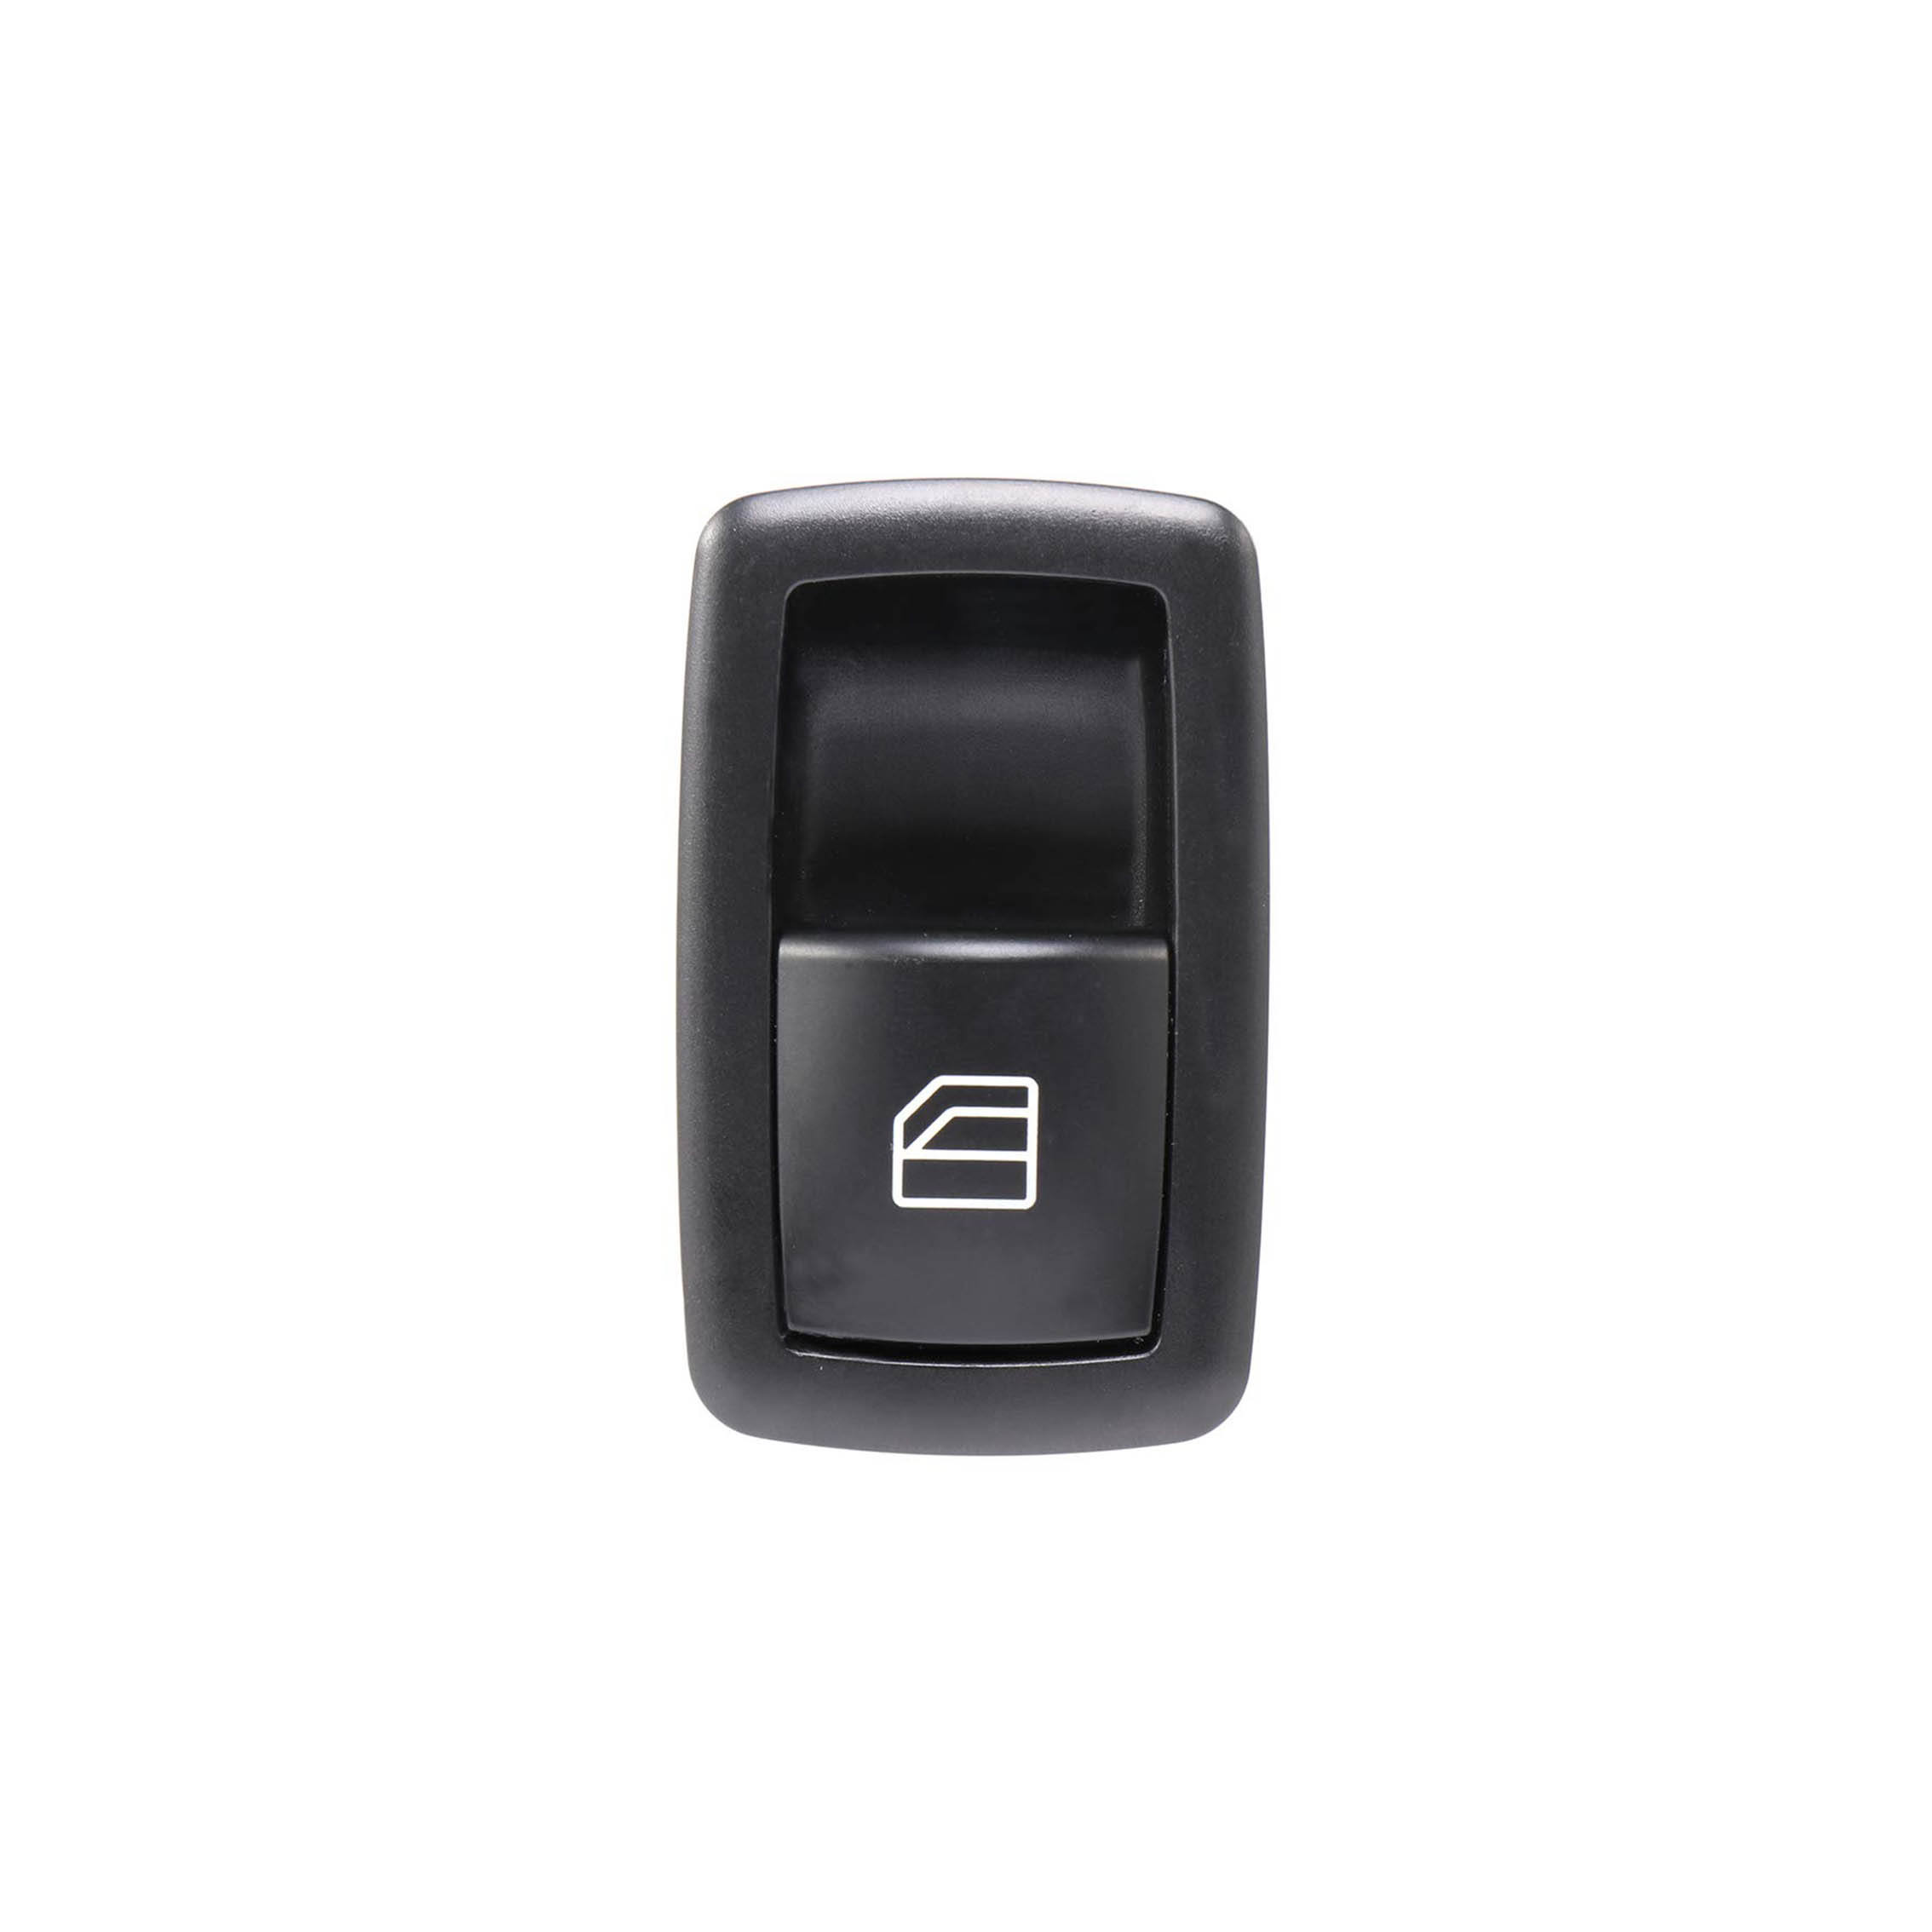 MB W251 W169 W245 X164 W164 A2518200510 Passenger Power Window Switch A B ML GL R Class 2518200510